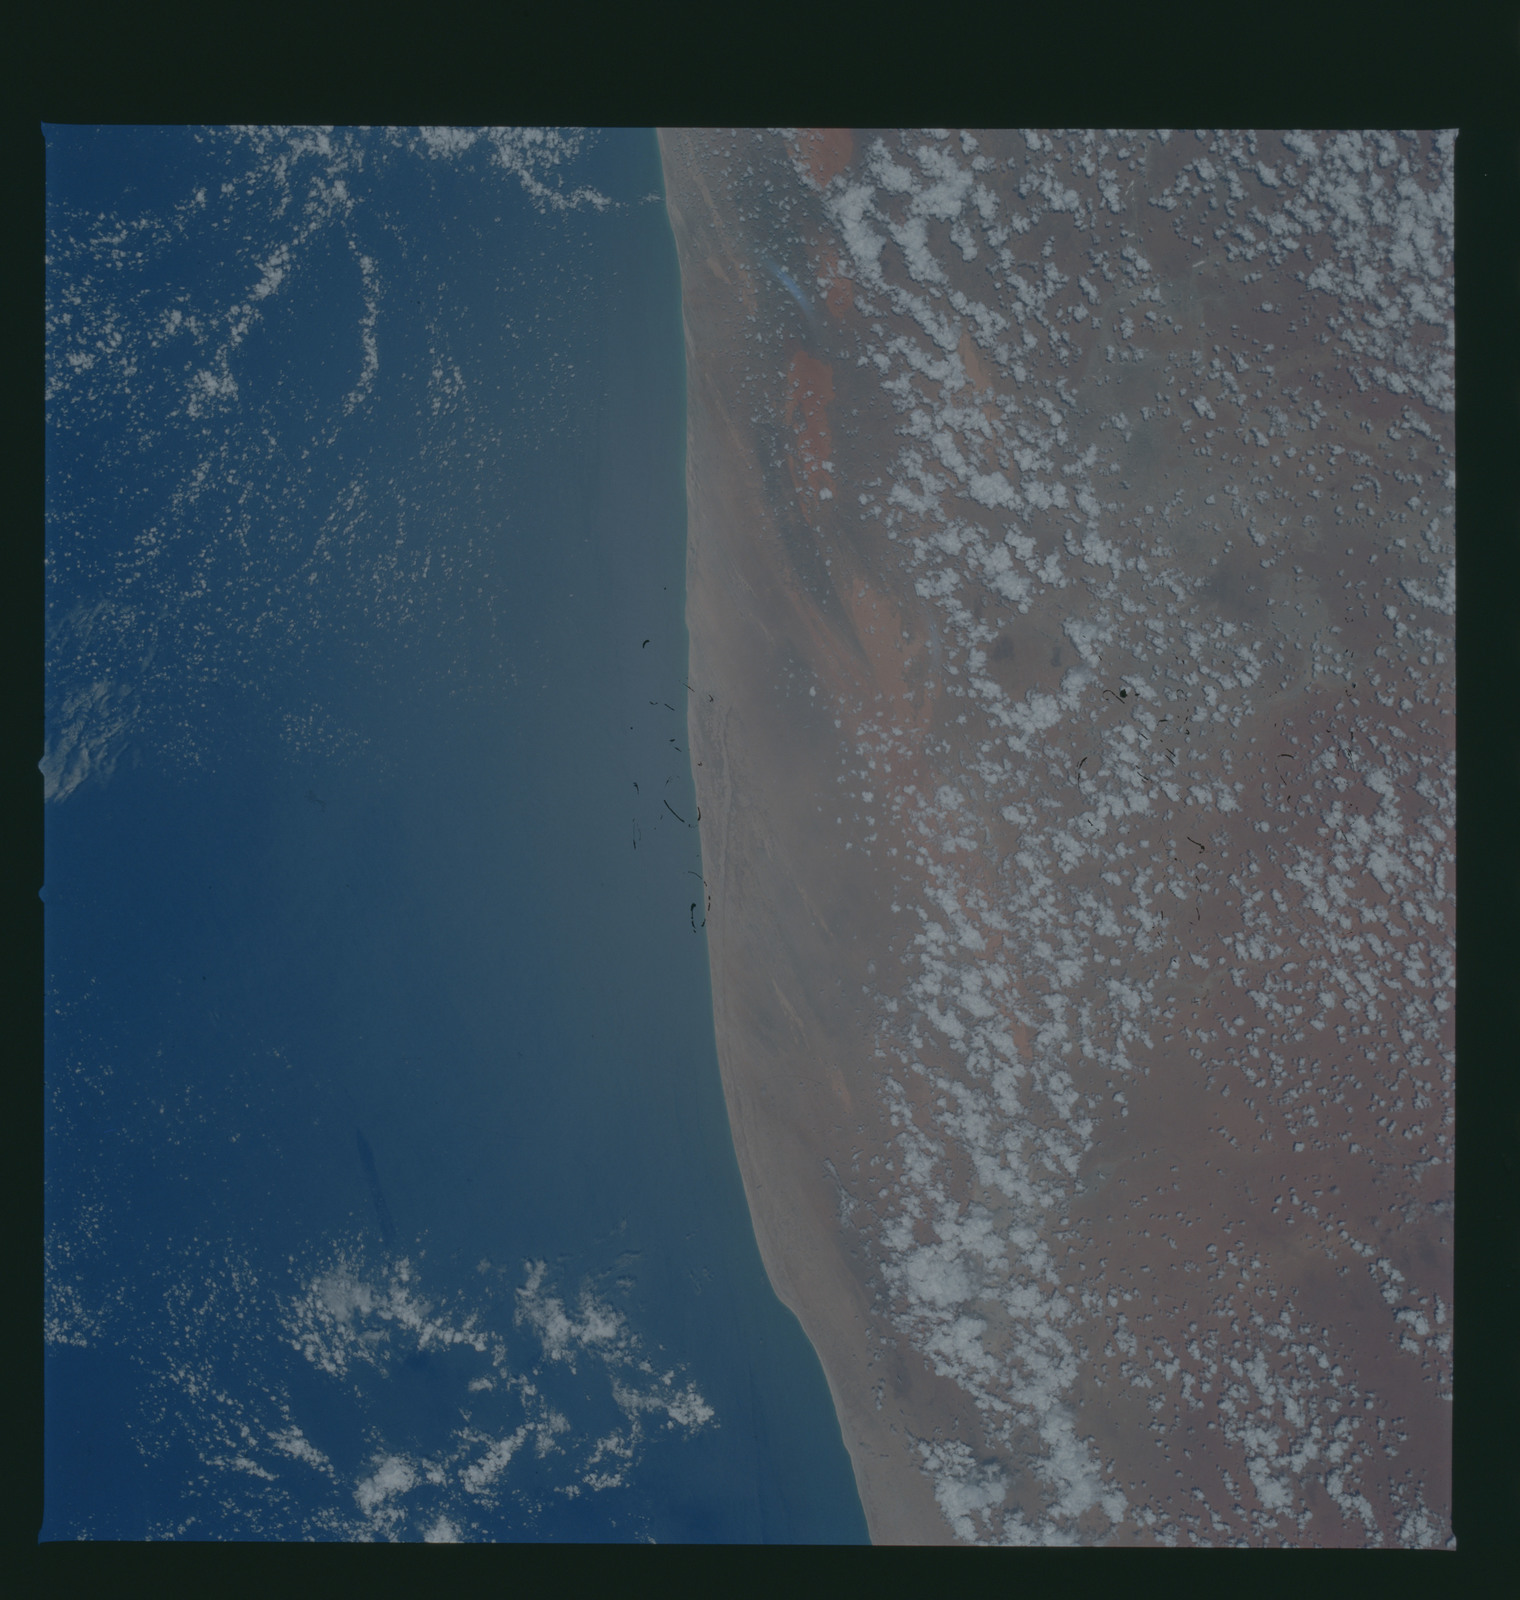 S37-96-105 - STS-037 - Earth observations taken from OV-104 during STS-37 mission